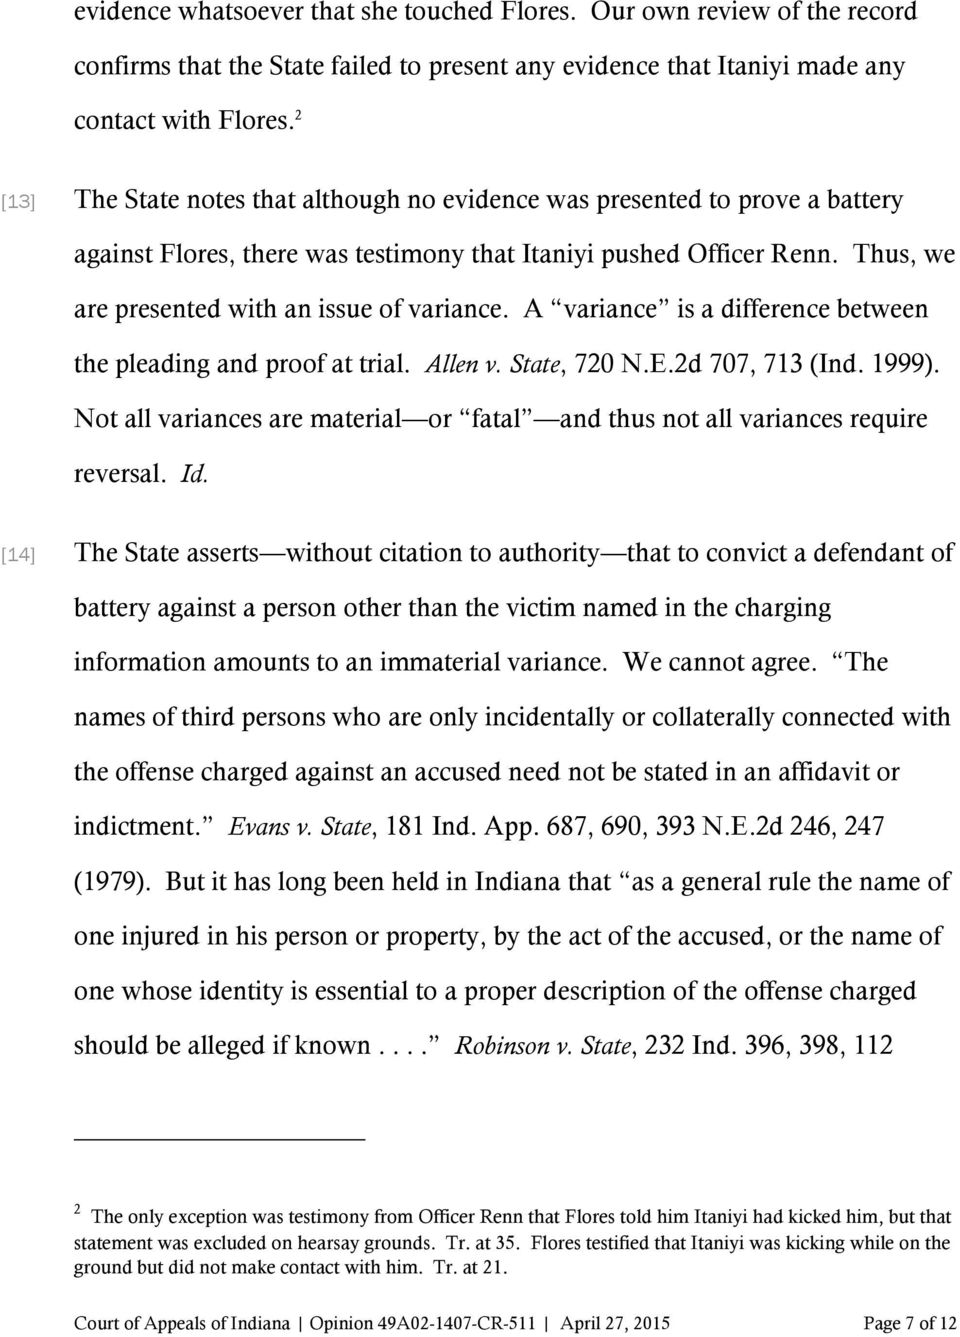 Thus, we are presented with an issue of variance. A variance is a difference between the pleading and proof at trial. Allen v. State, 720 N.E.2d 707, 713 (Ind. 1999).